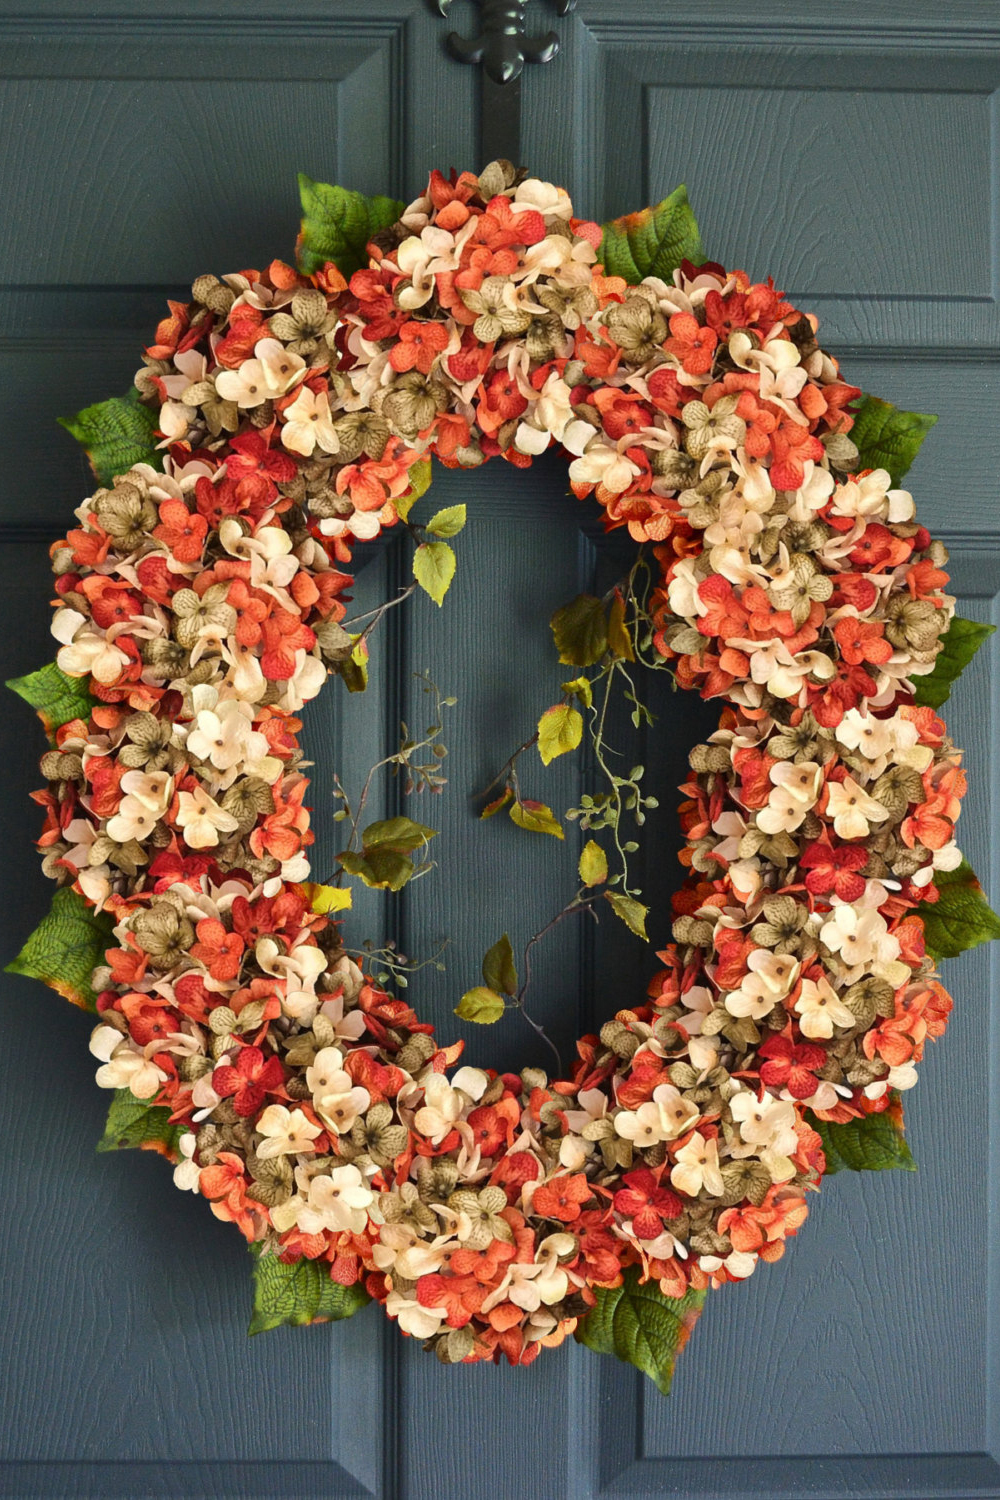 26 Easy DIY Fall Wreaths - Best Homemade Wreaths for Fall